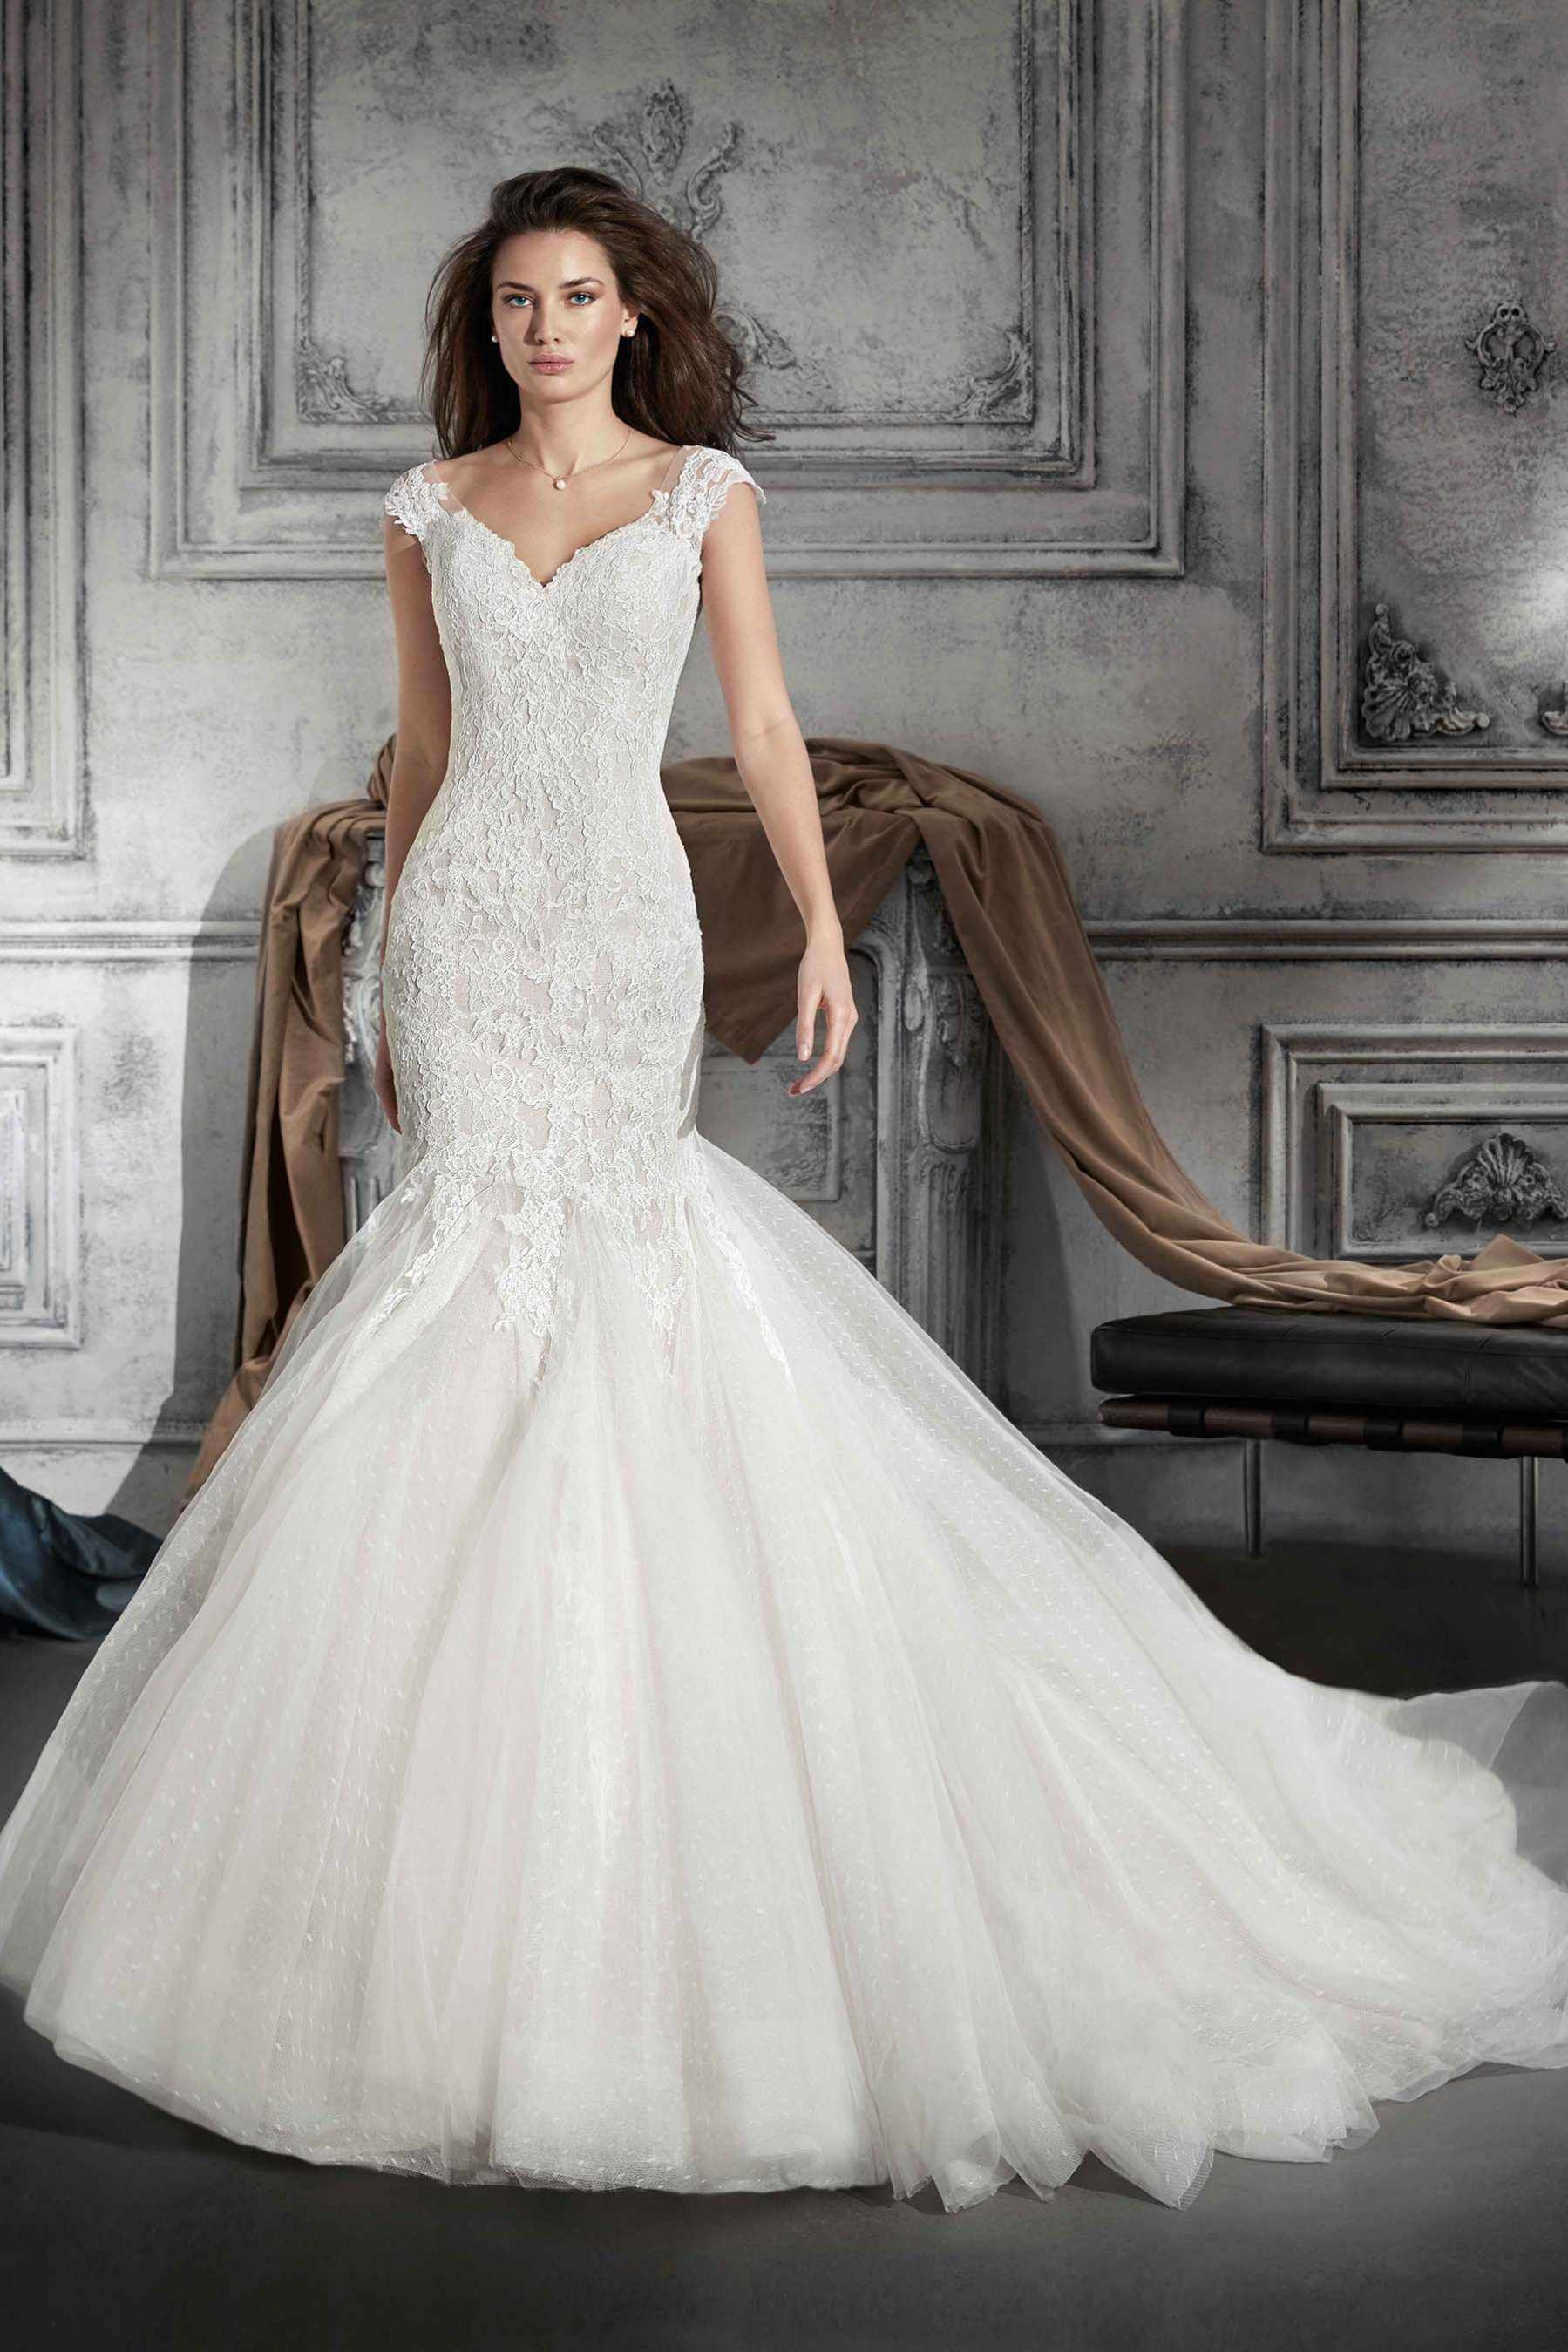 Demetrios style an exquisite mermaid dress in chantilly